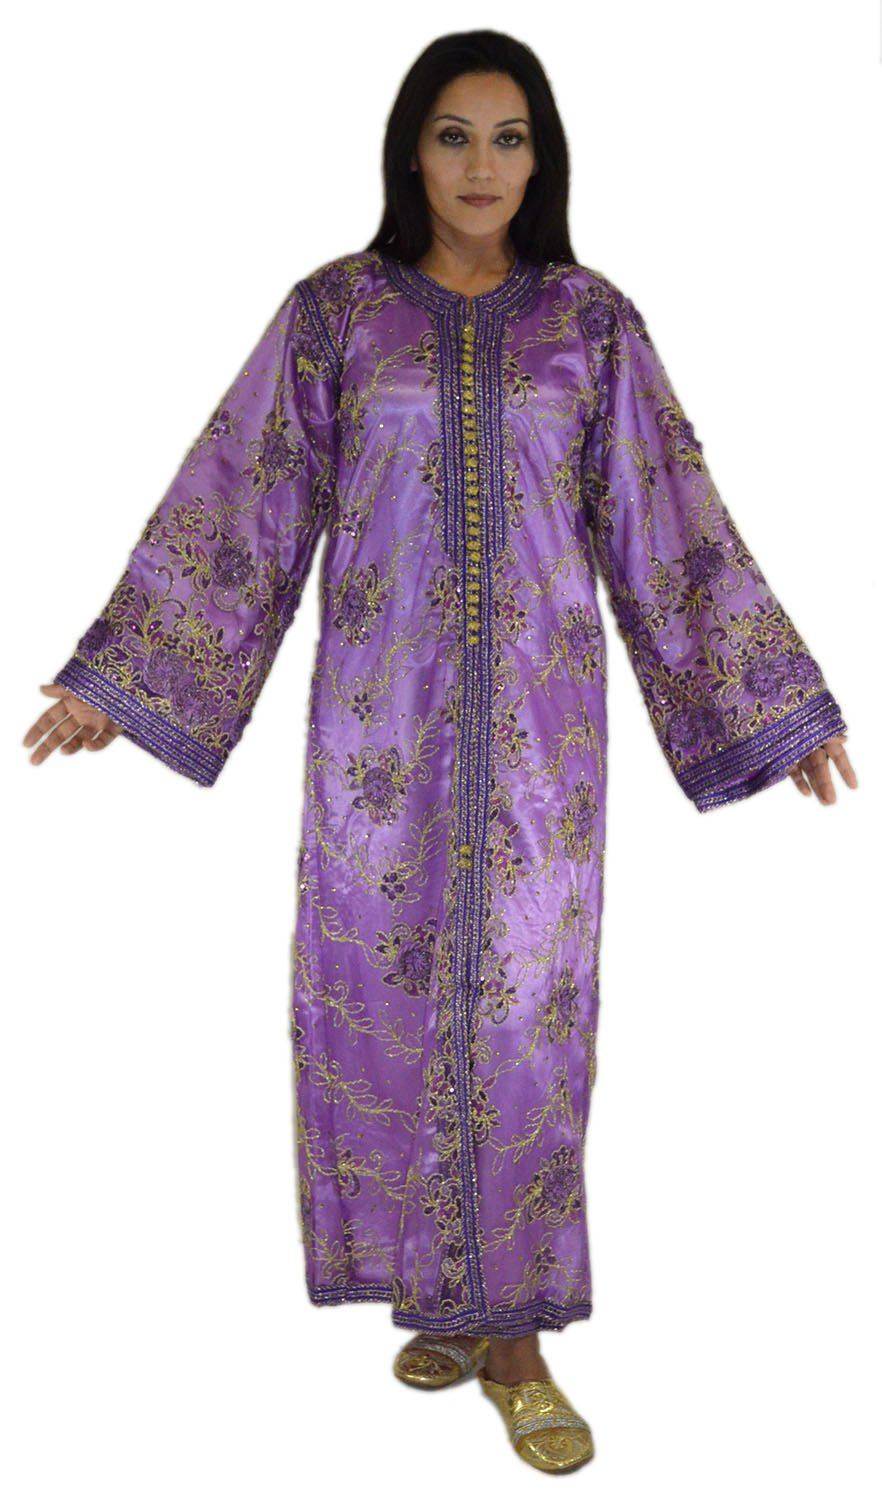 Moroccan Caftans Wedding Gown Handmade 2 Pieces Embroidered Fits SMALL to LARGE Purple